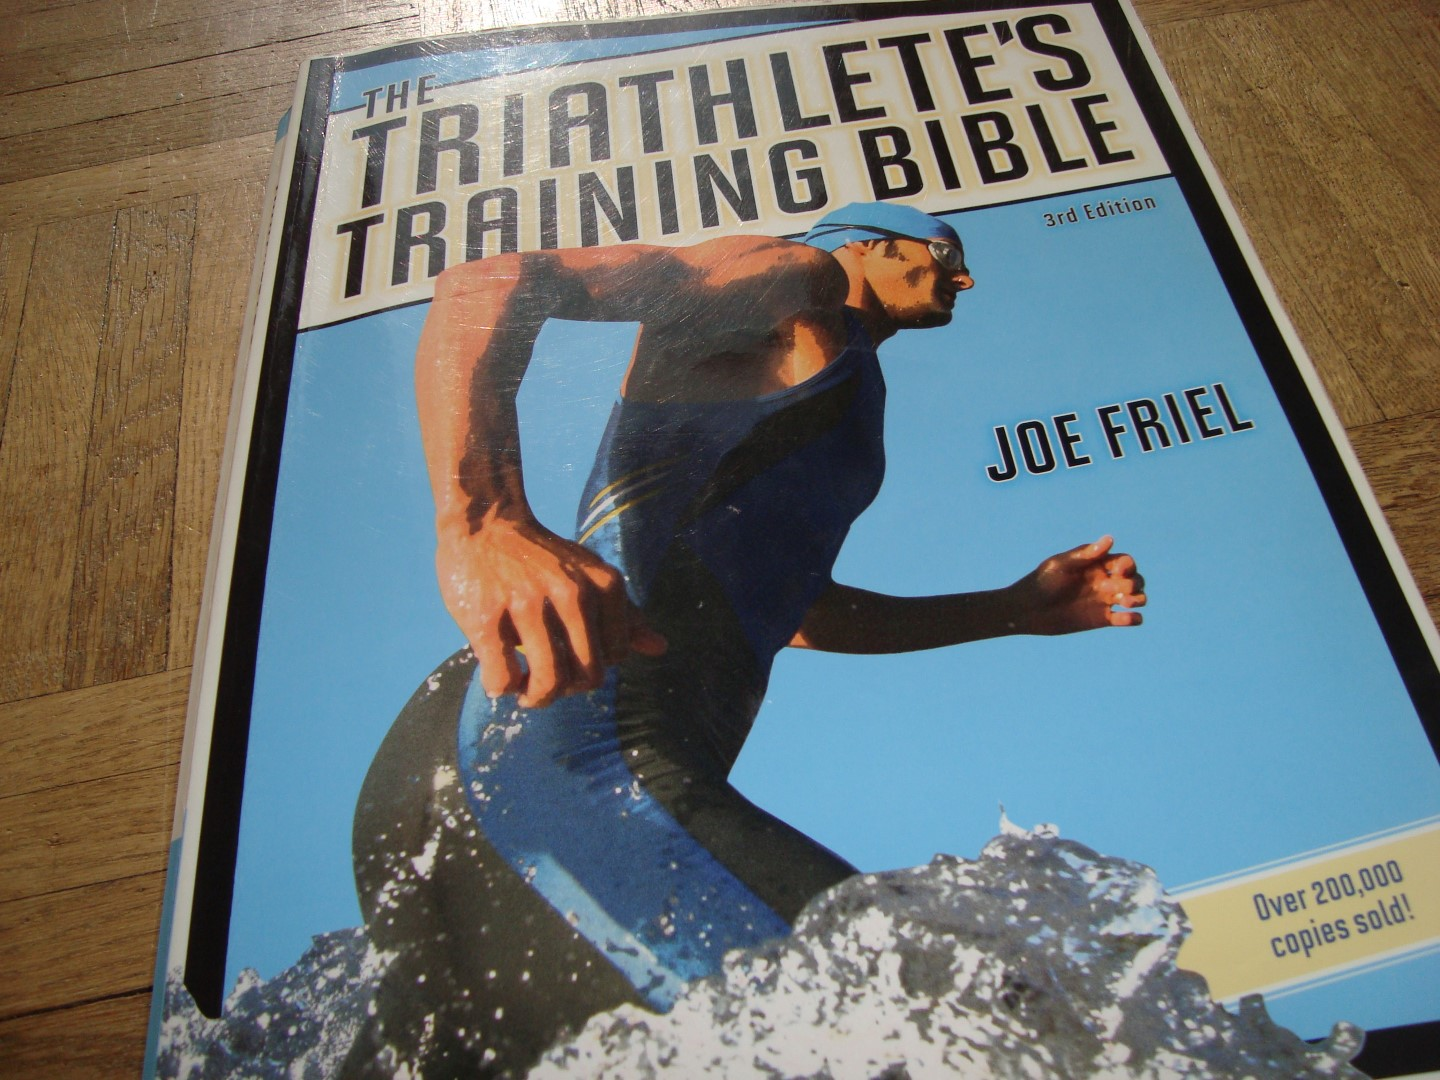 Die besten Triathlon-Bücher: The Triathlete's Training Bible